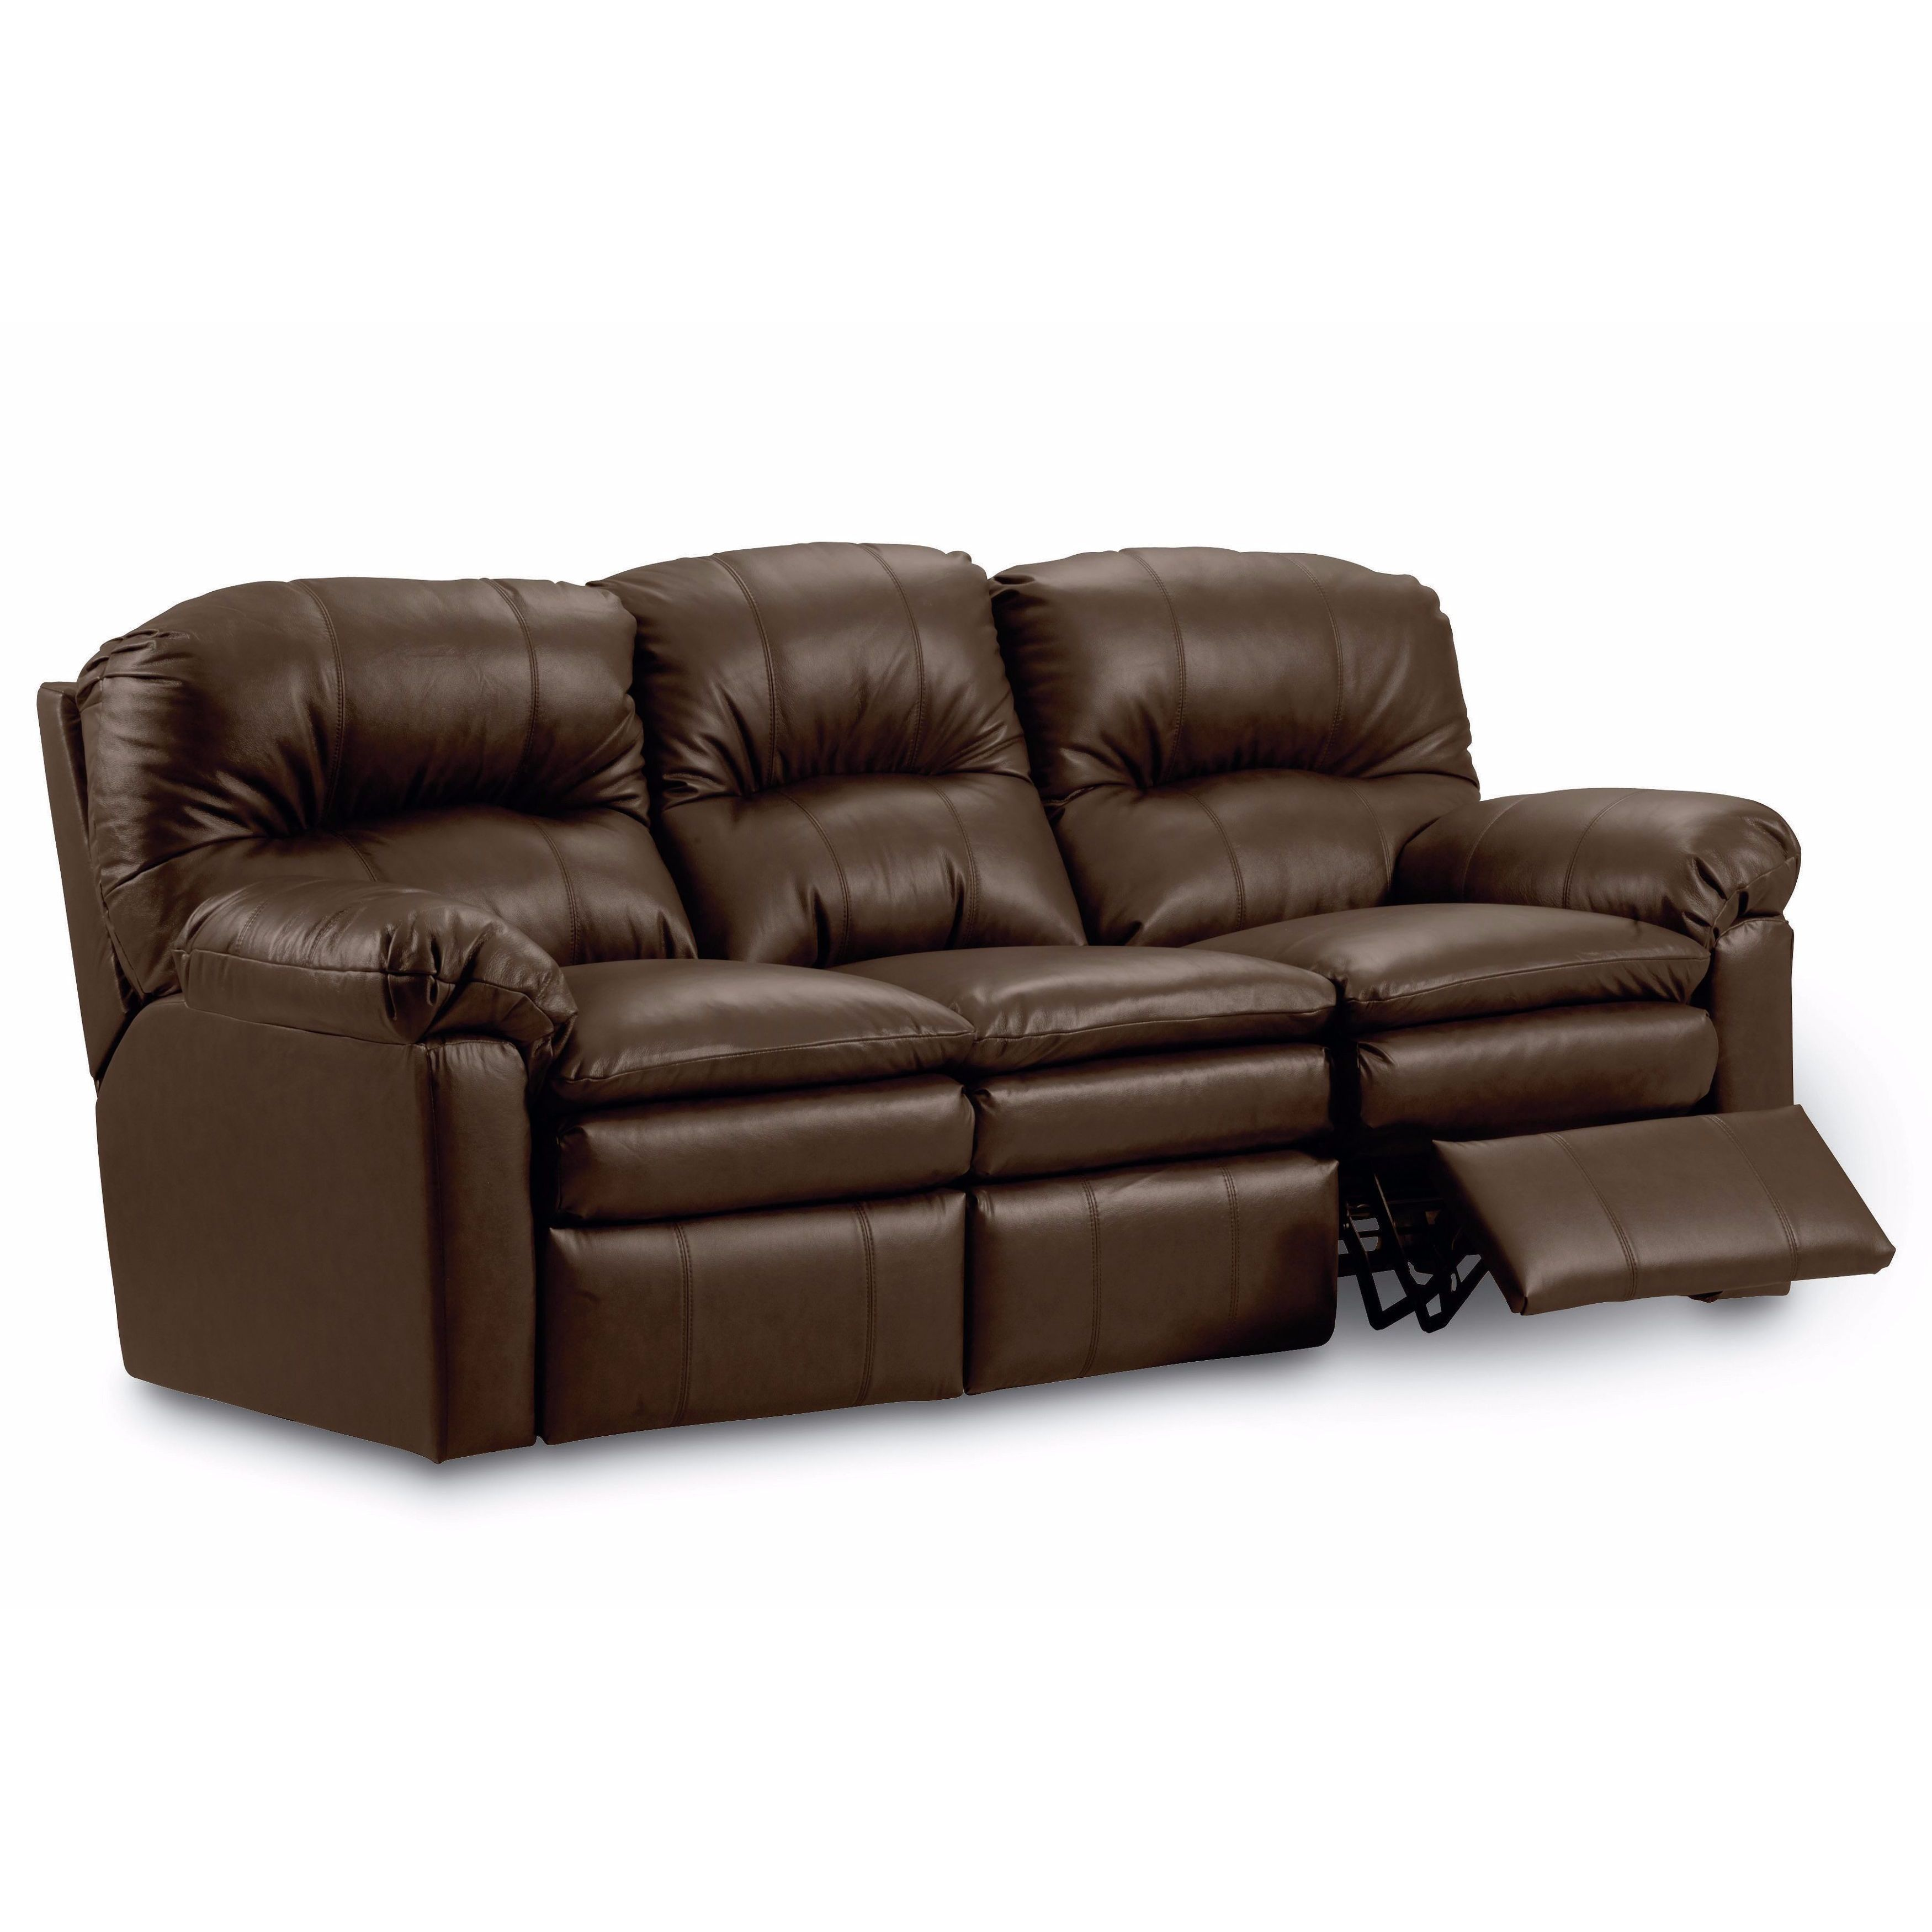 Lane Furniture Touchdown Double Reclining Console Sofa Free Shipping Today 12416879